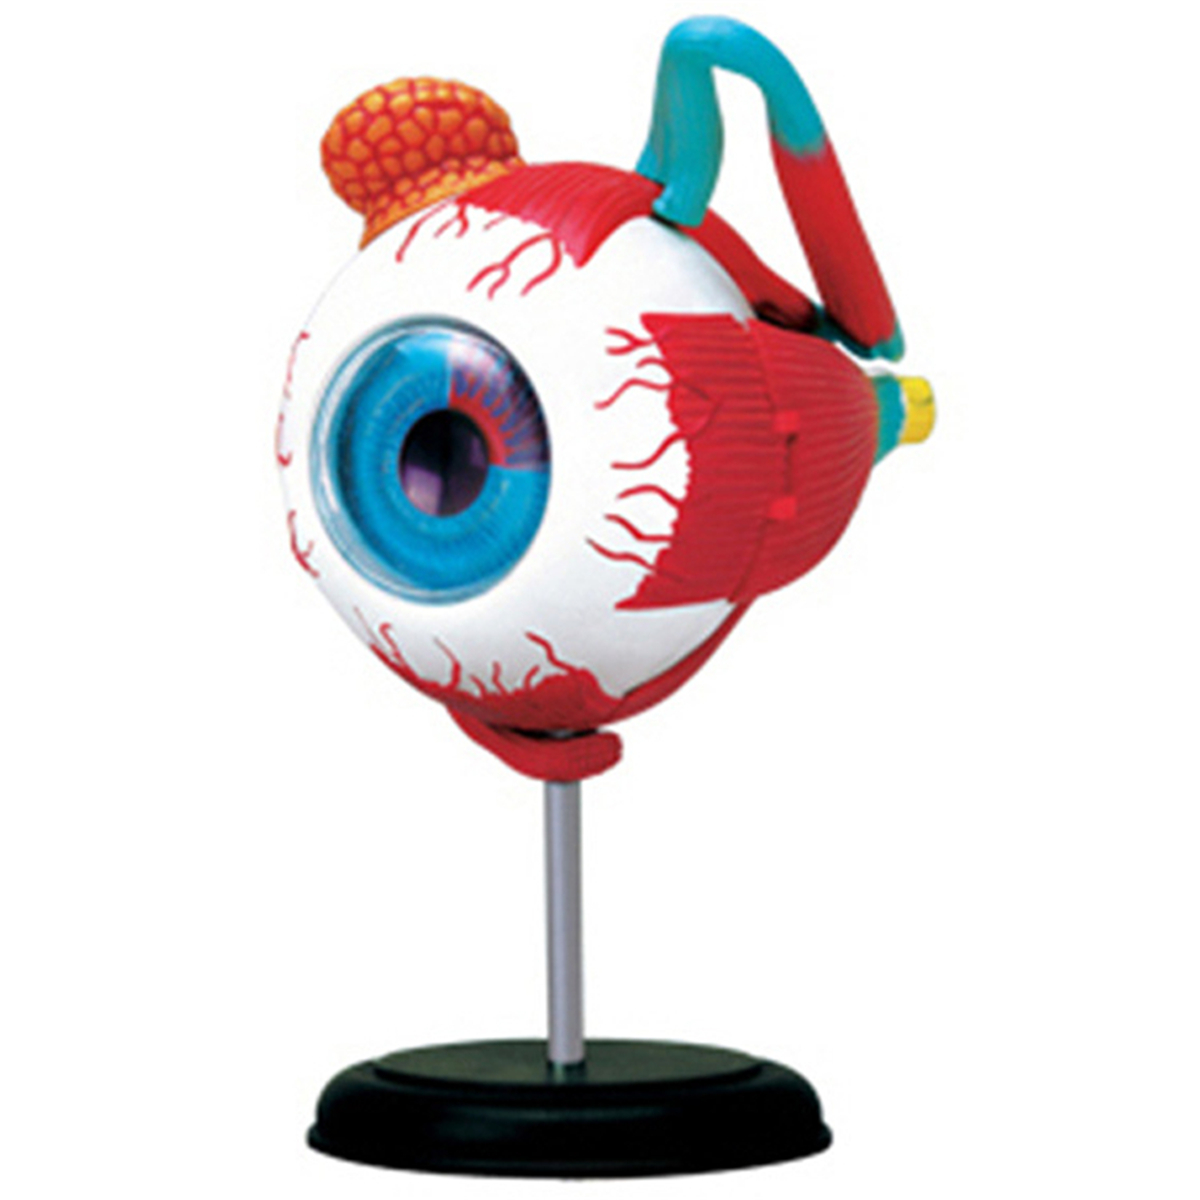 4D Human Eyeball Teaching Model Separately Study Learning Instrument Science Toy